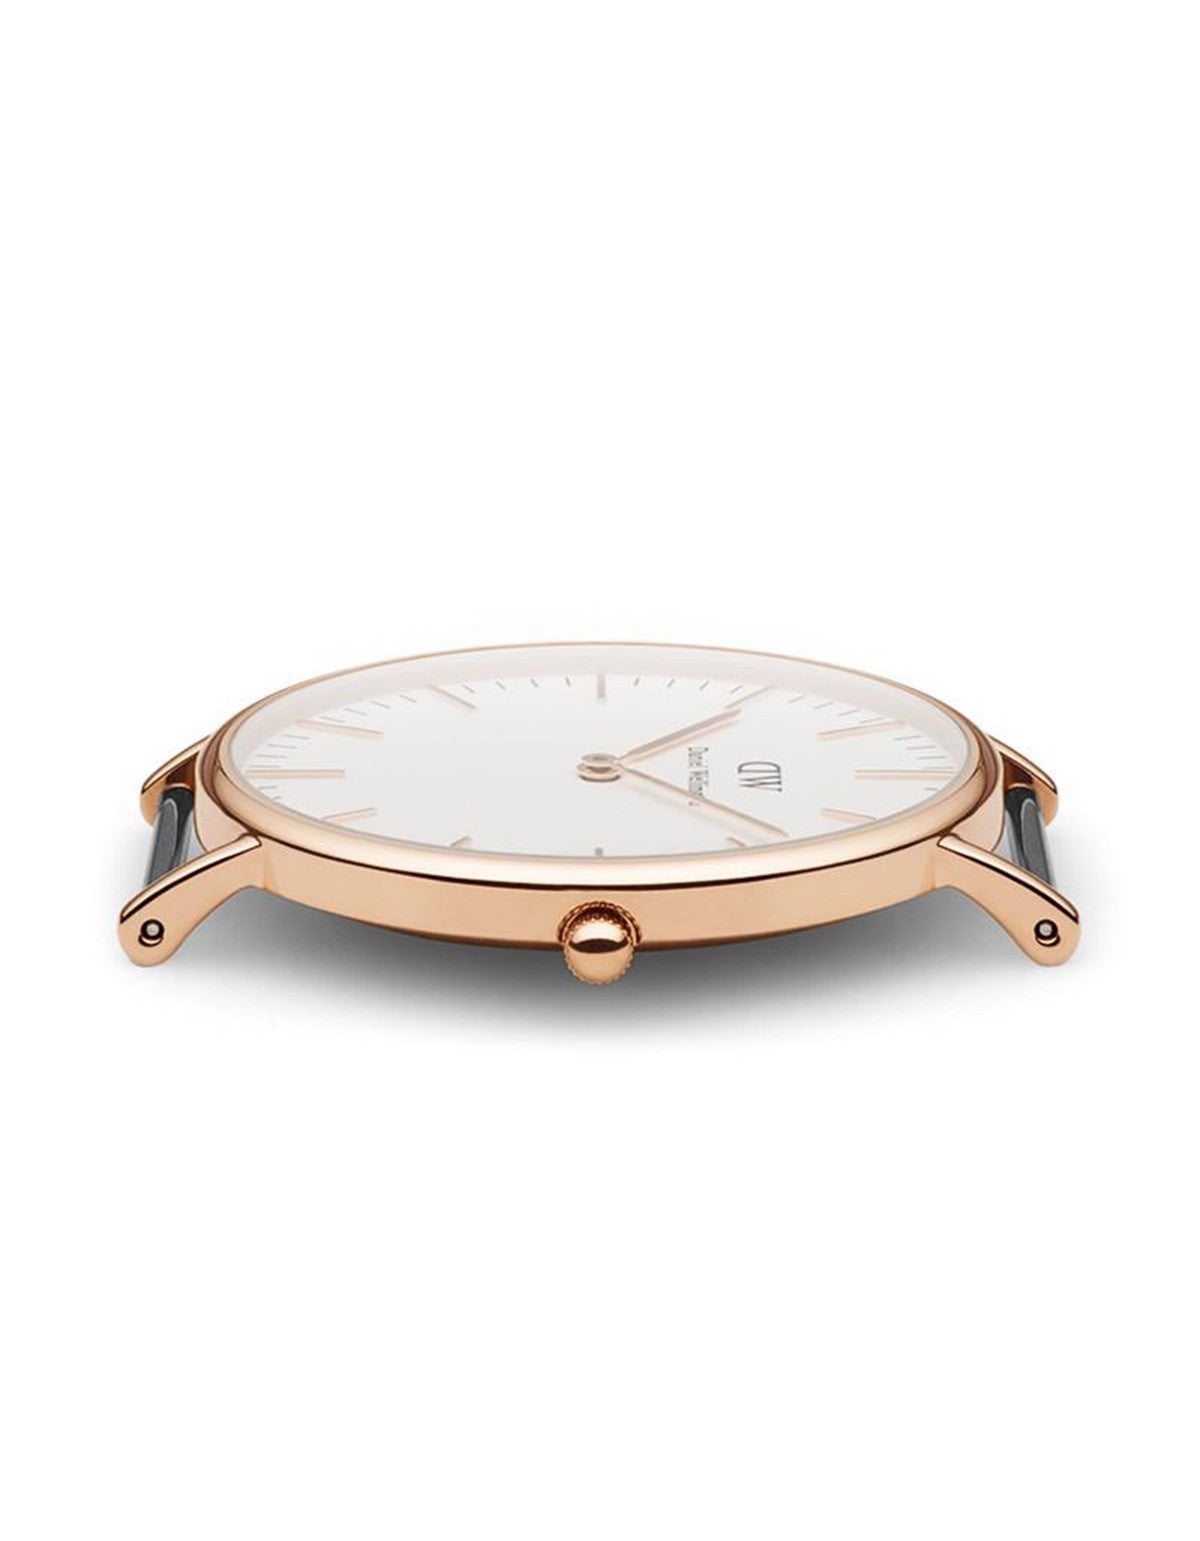 Daniel Wellington Womens St. Andrews Watch Rose Gold 36mm - Still Life - 2